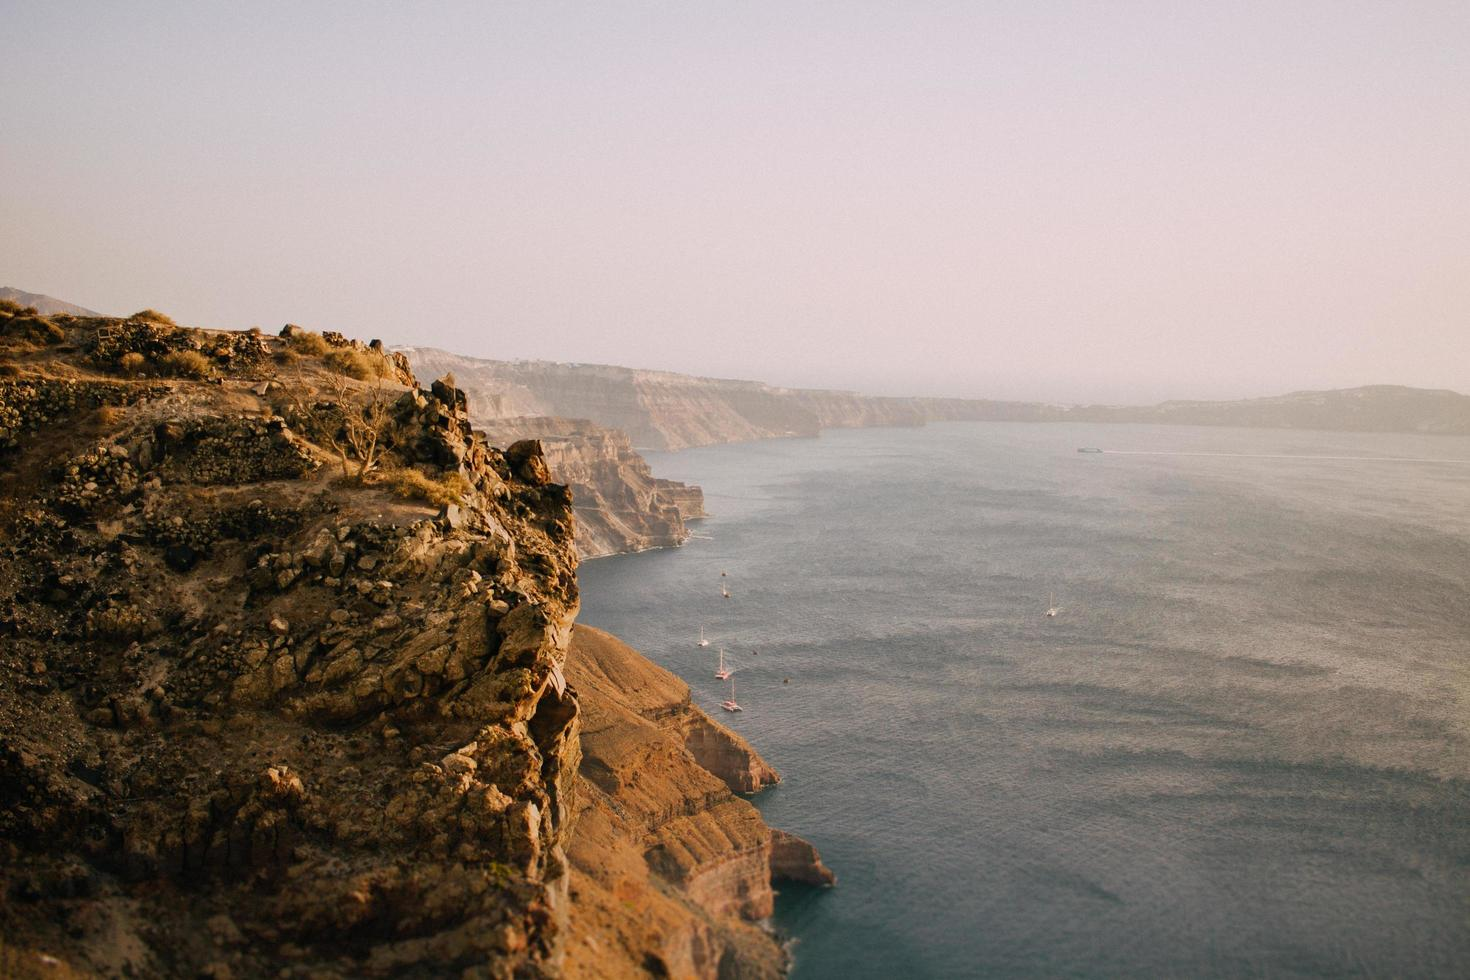 Scenic view of the ocean near cliffs photo